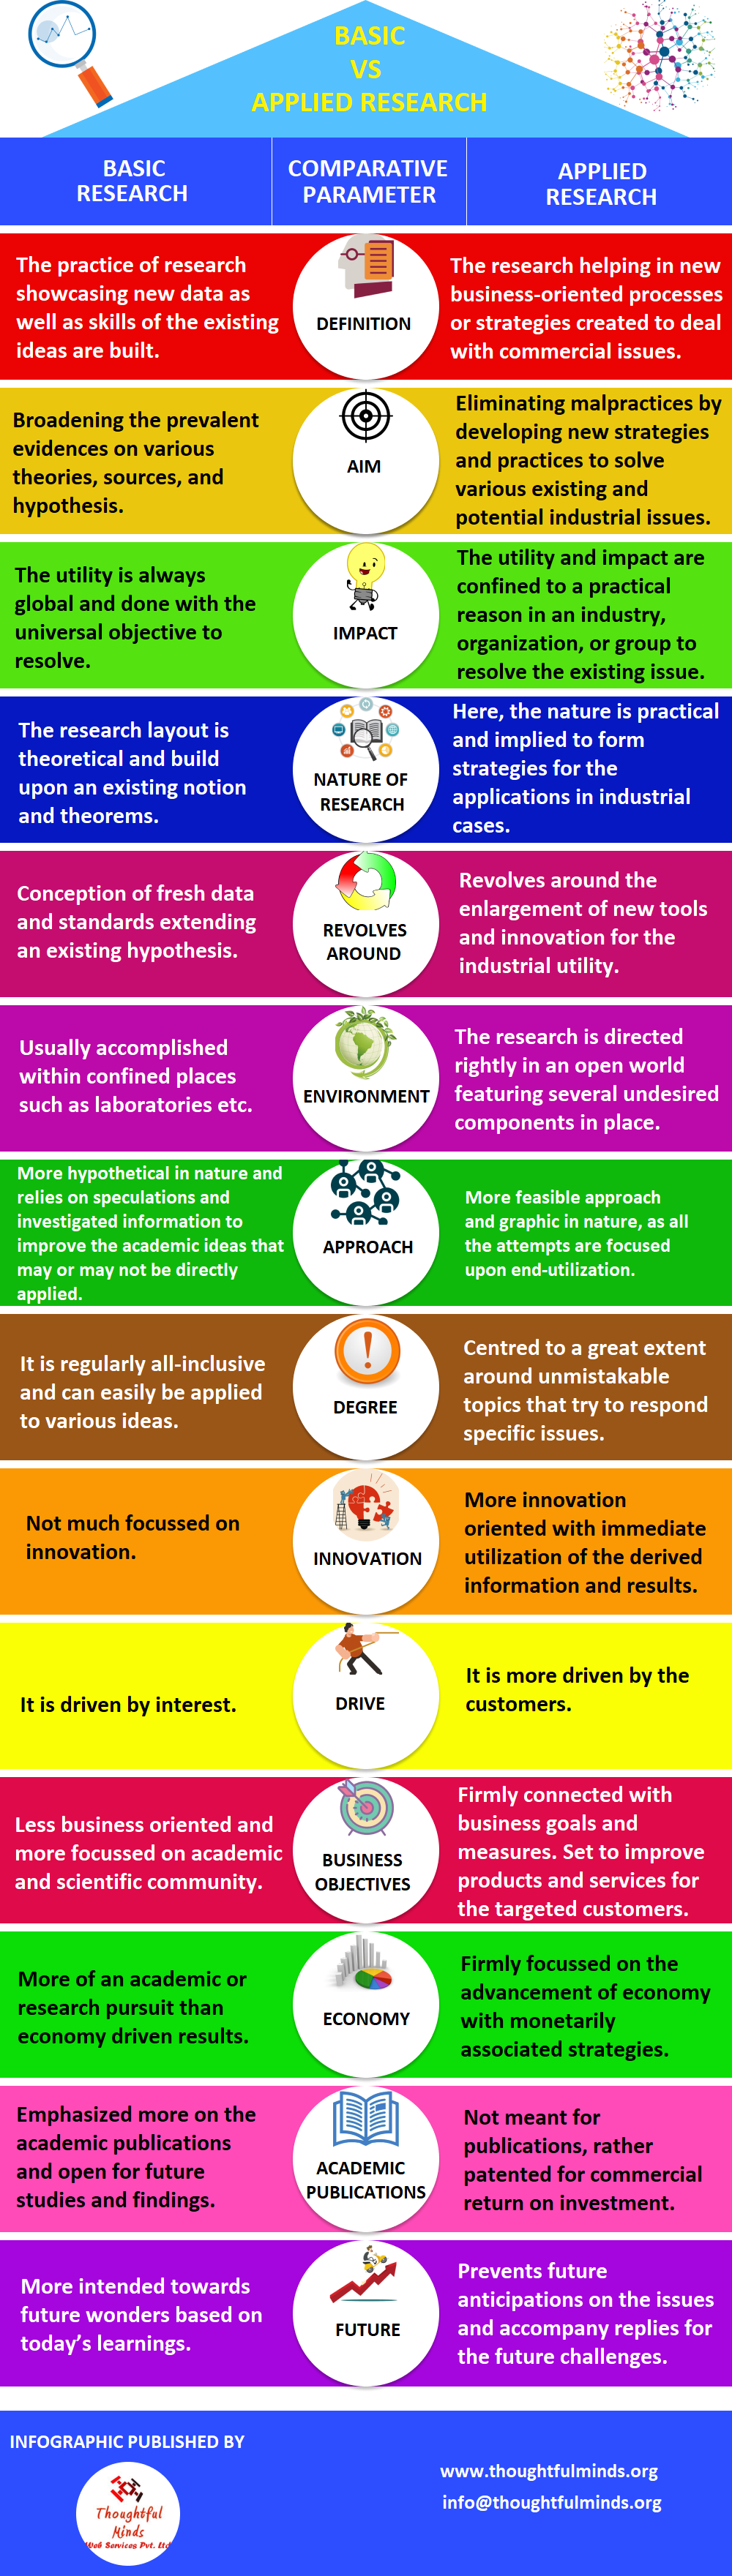 Basic Vs Applied Research Infographic - ThoughtfulMinds